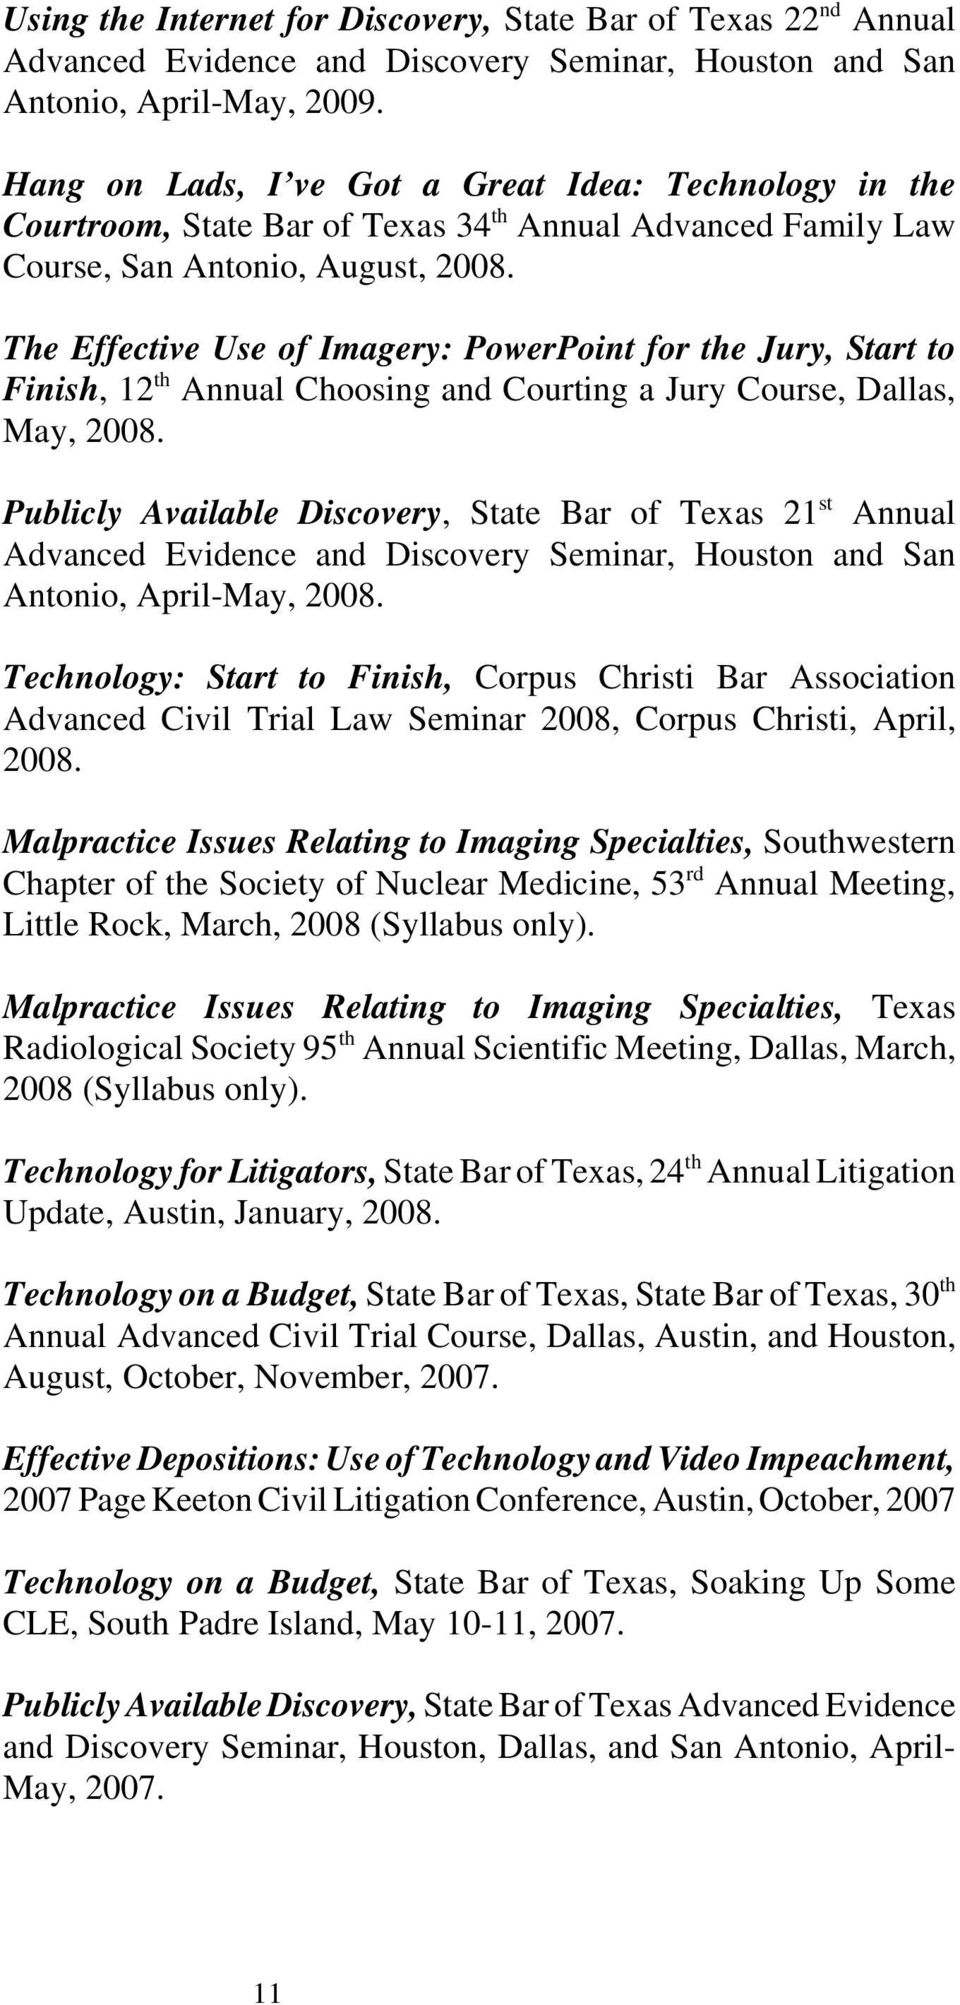 The Effective Use of Imagery: PowerPoint for the Jury, Start to Finish, 12 th Annual Choosing and Courting a Jury Course, Dallas, May, 2008.